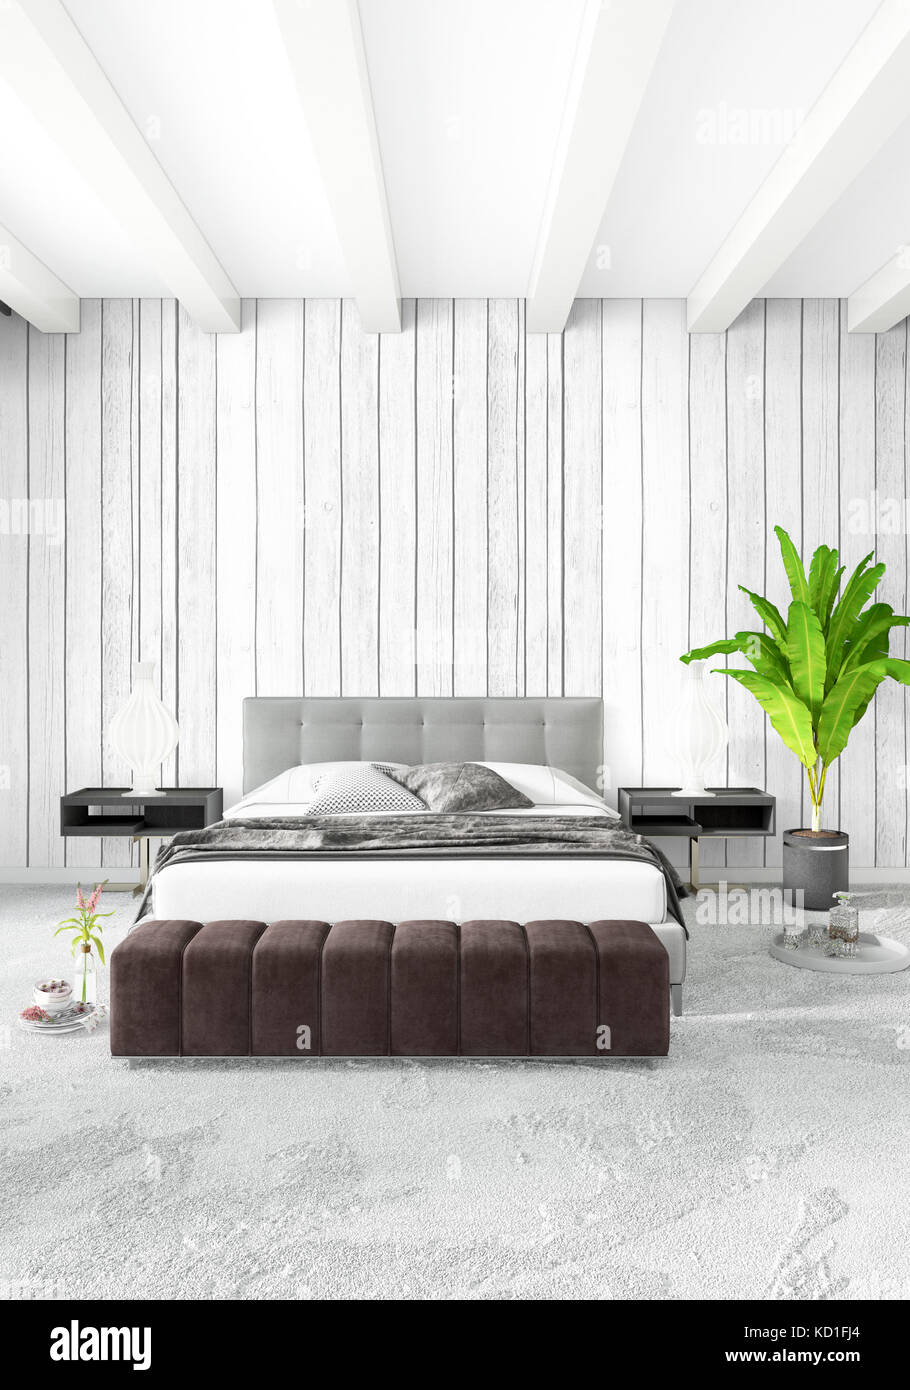 Loft Bedroom Or Living Room Minimal Style Interior Design With Eclectic  Wall And Stylish Sofa. 3D Rendering.